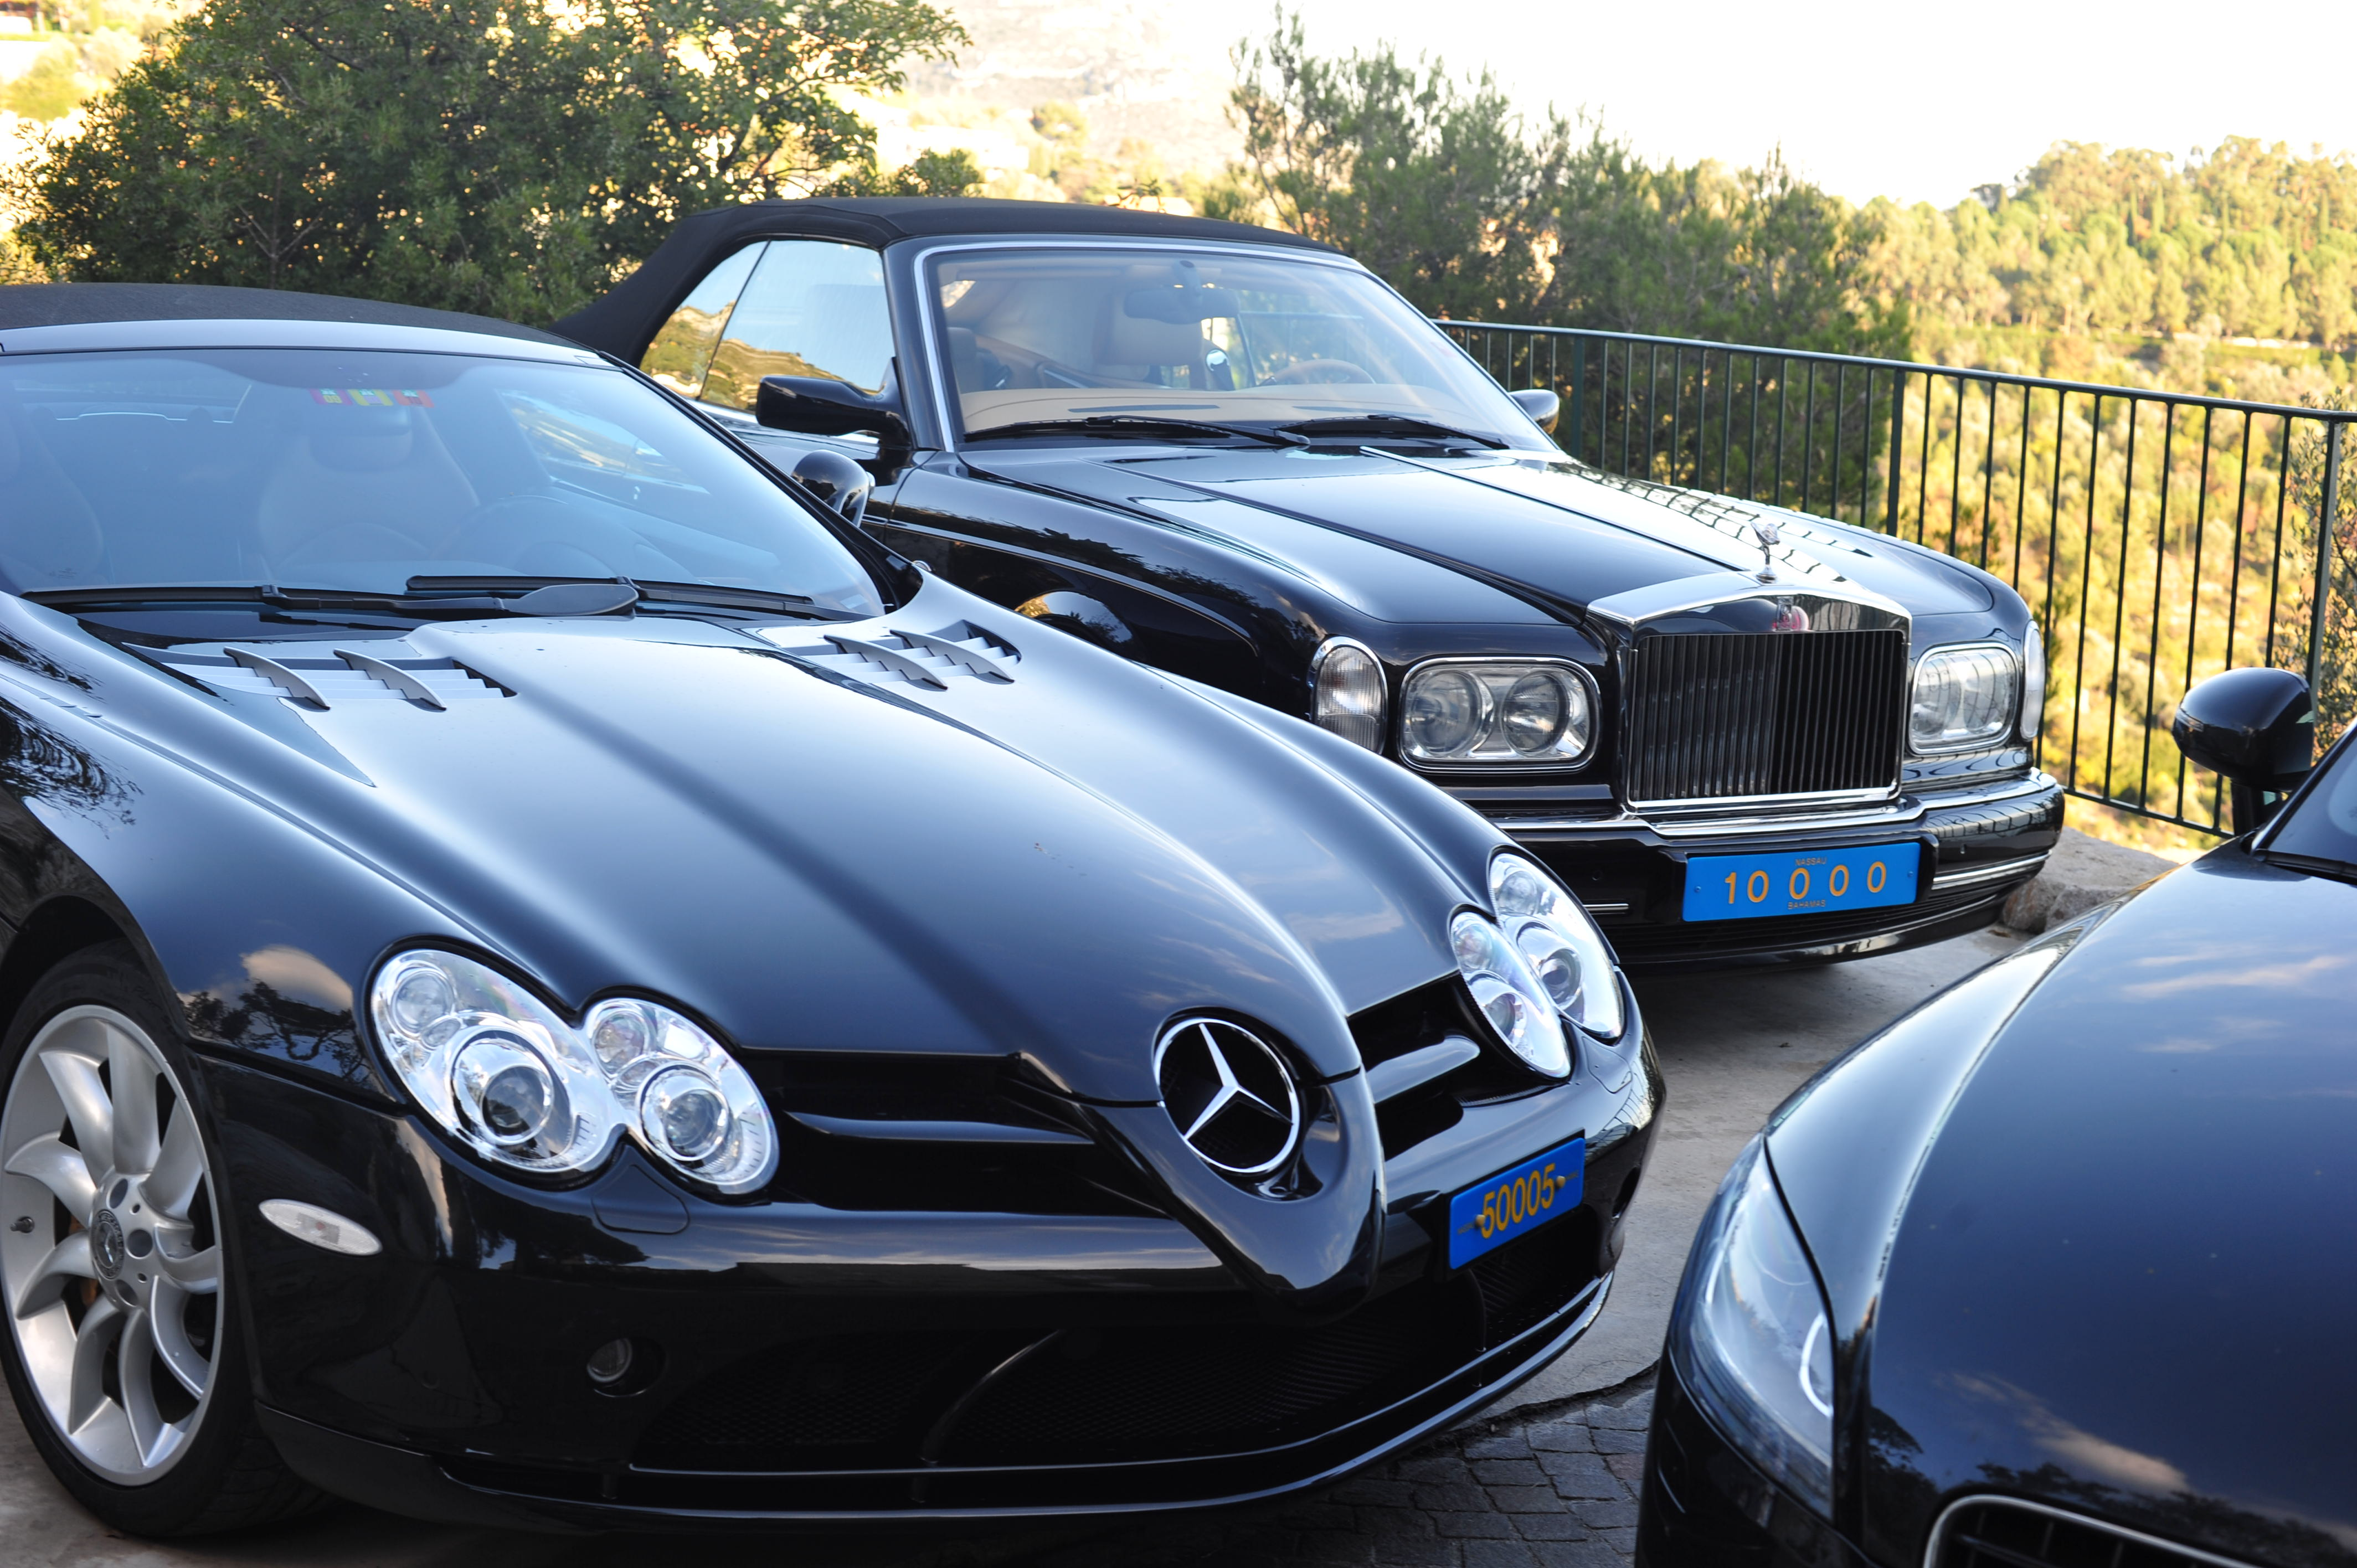 Super-nice cars with Bahamas registration1 Comment